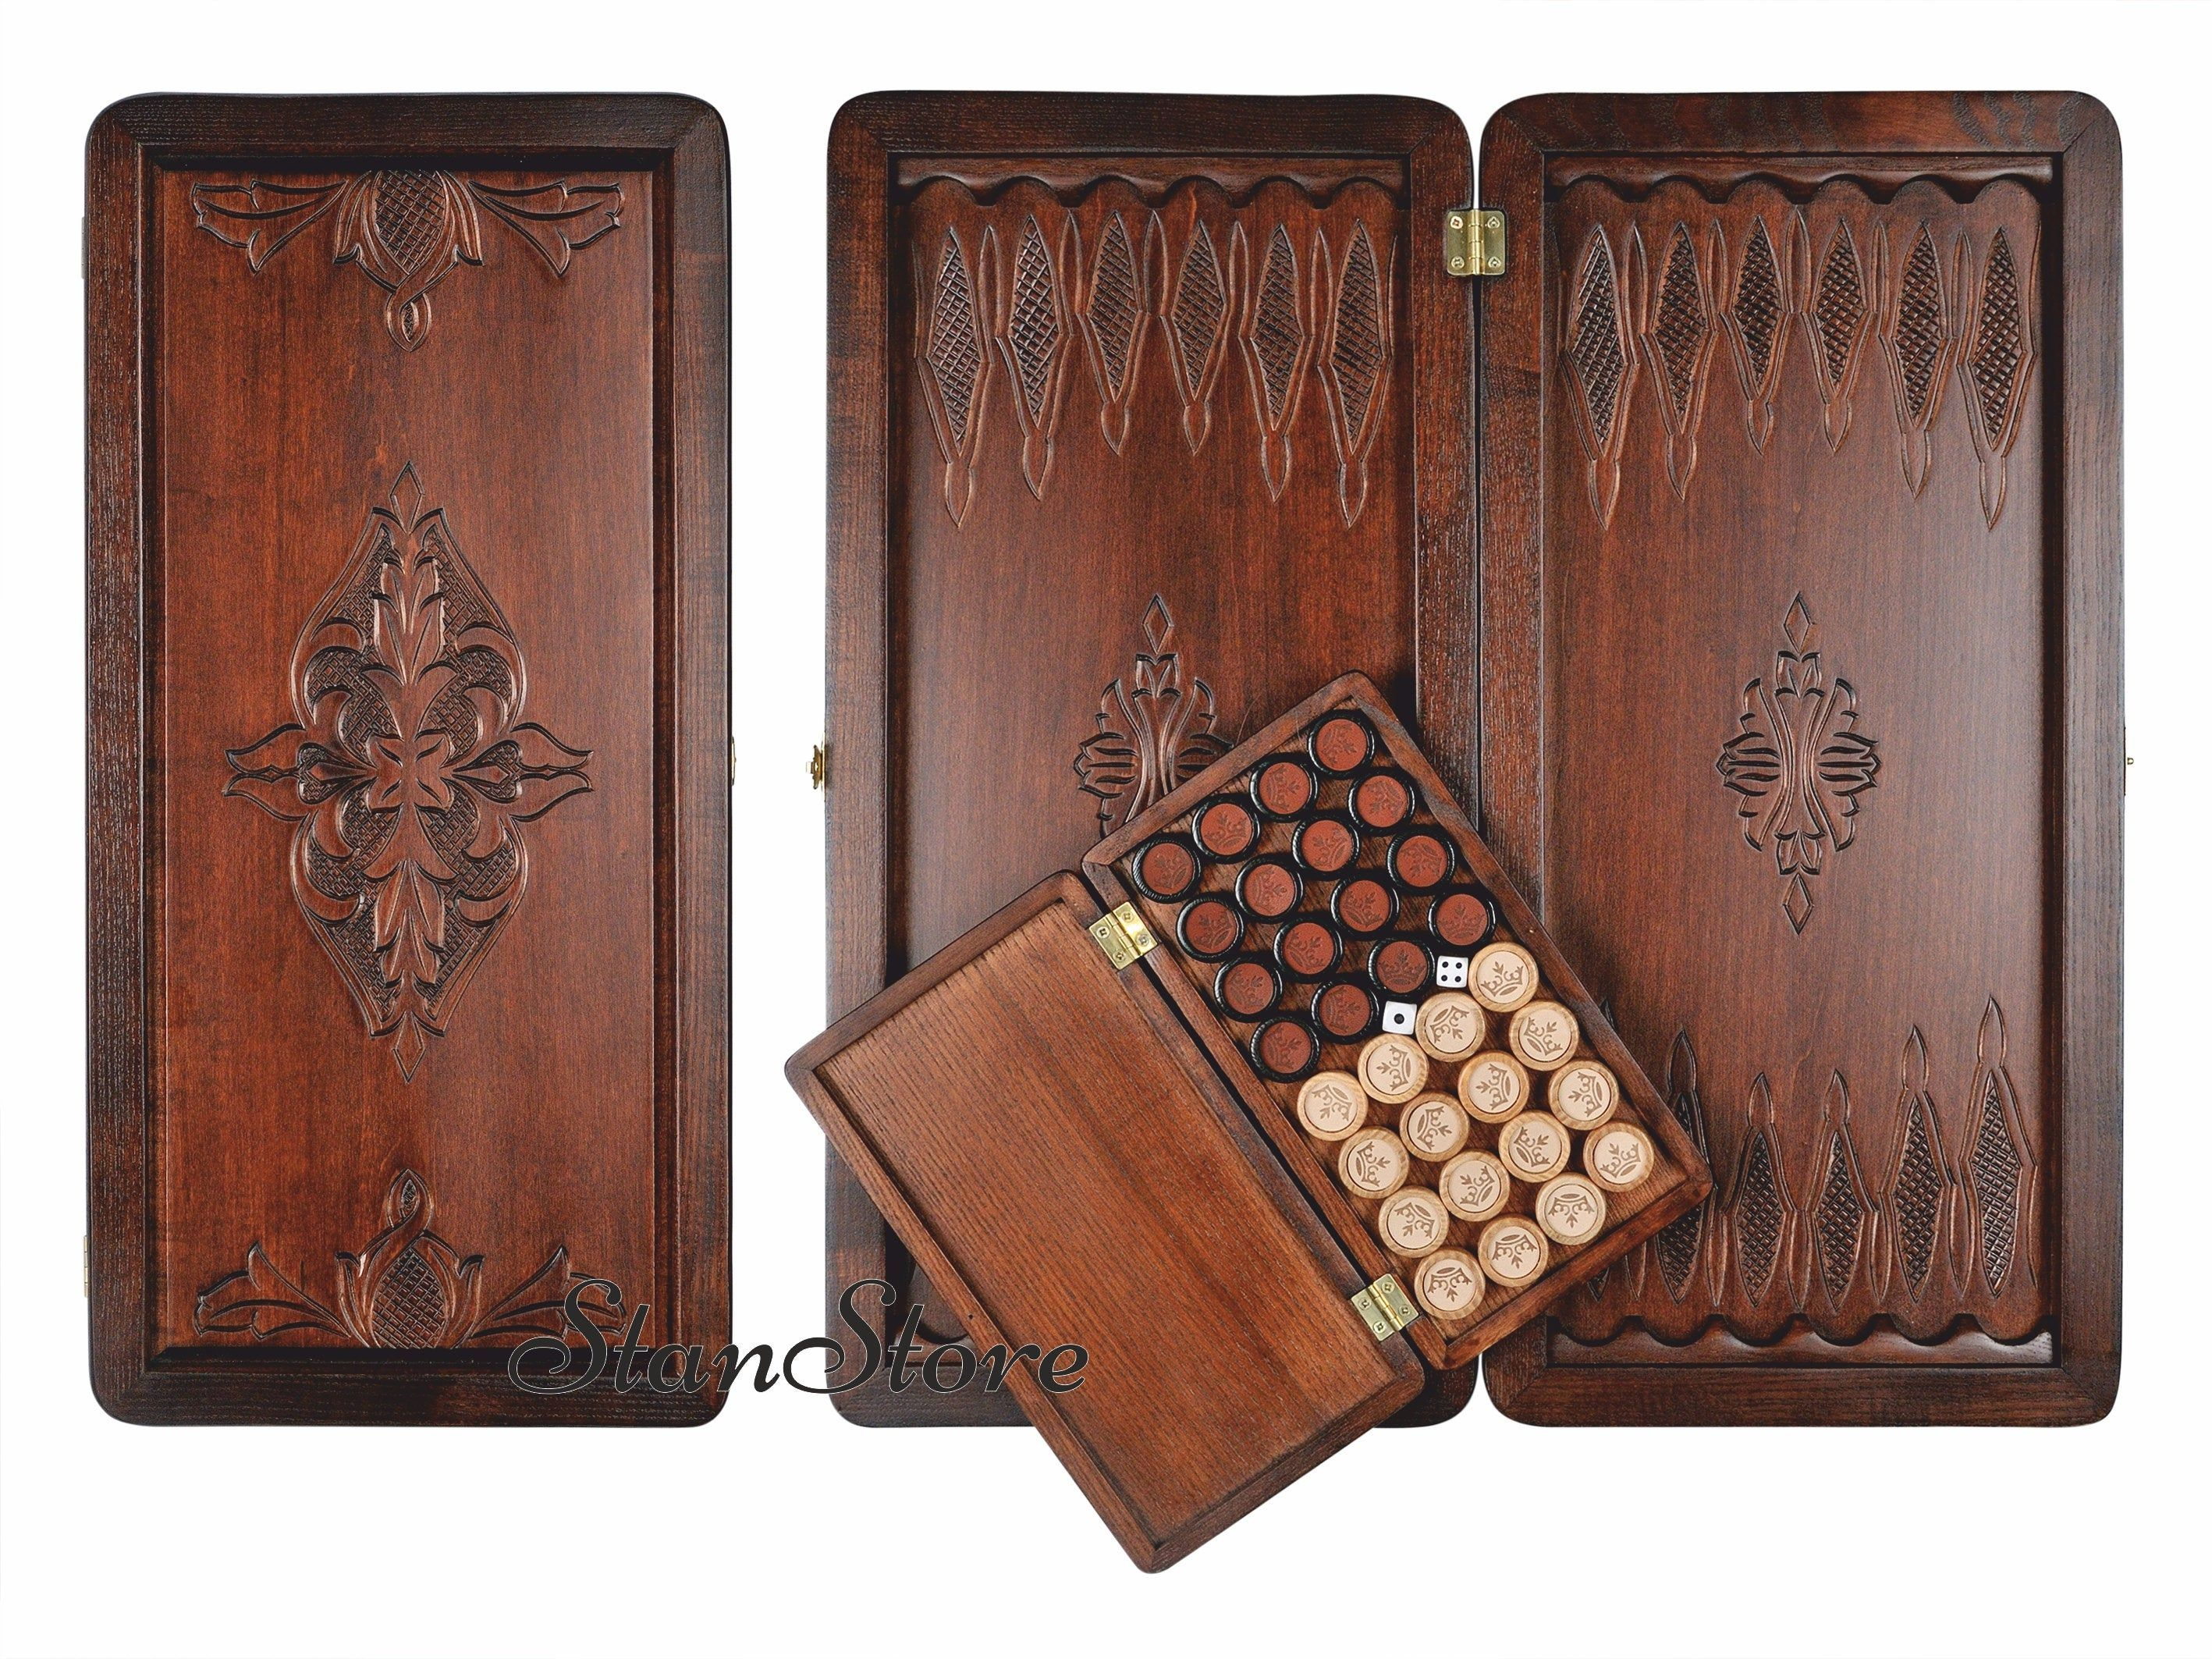 Backgammon Set with Stones Dice Personalized gift Wooden